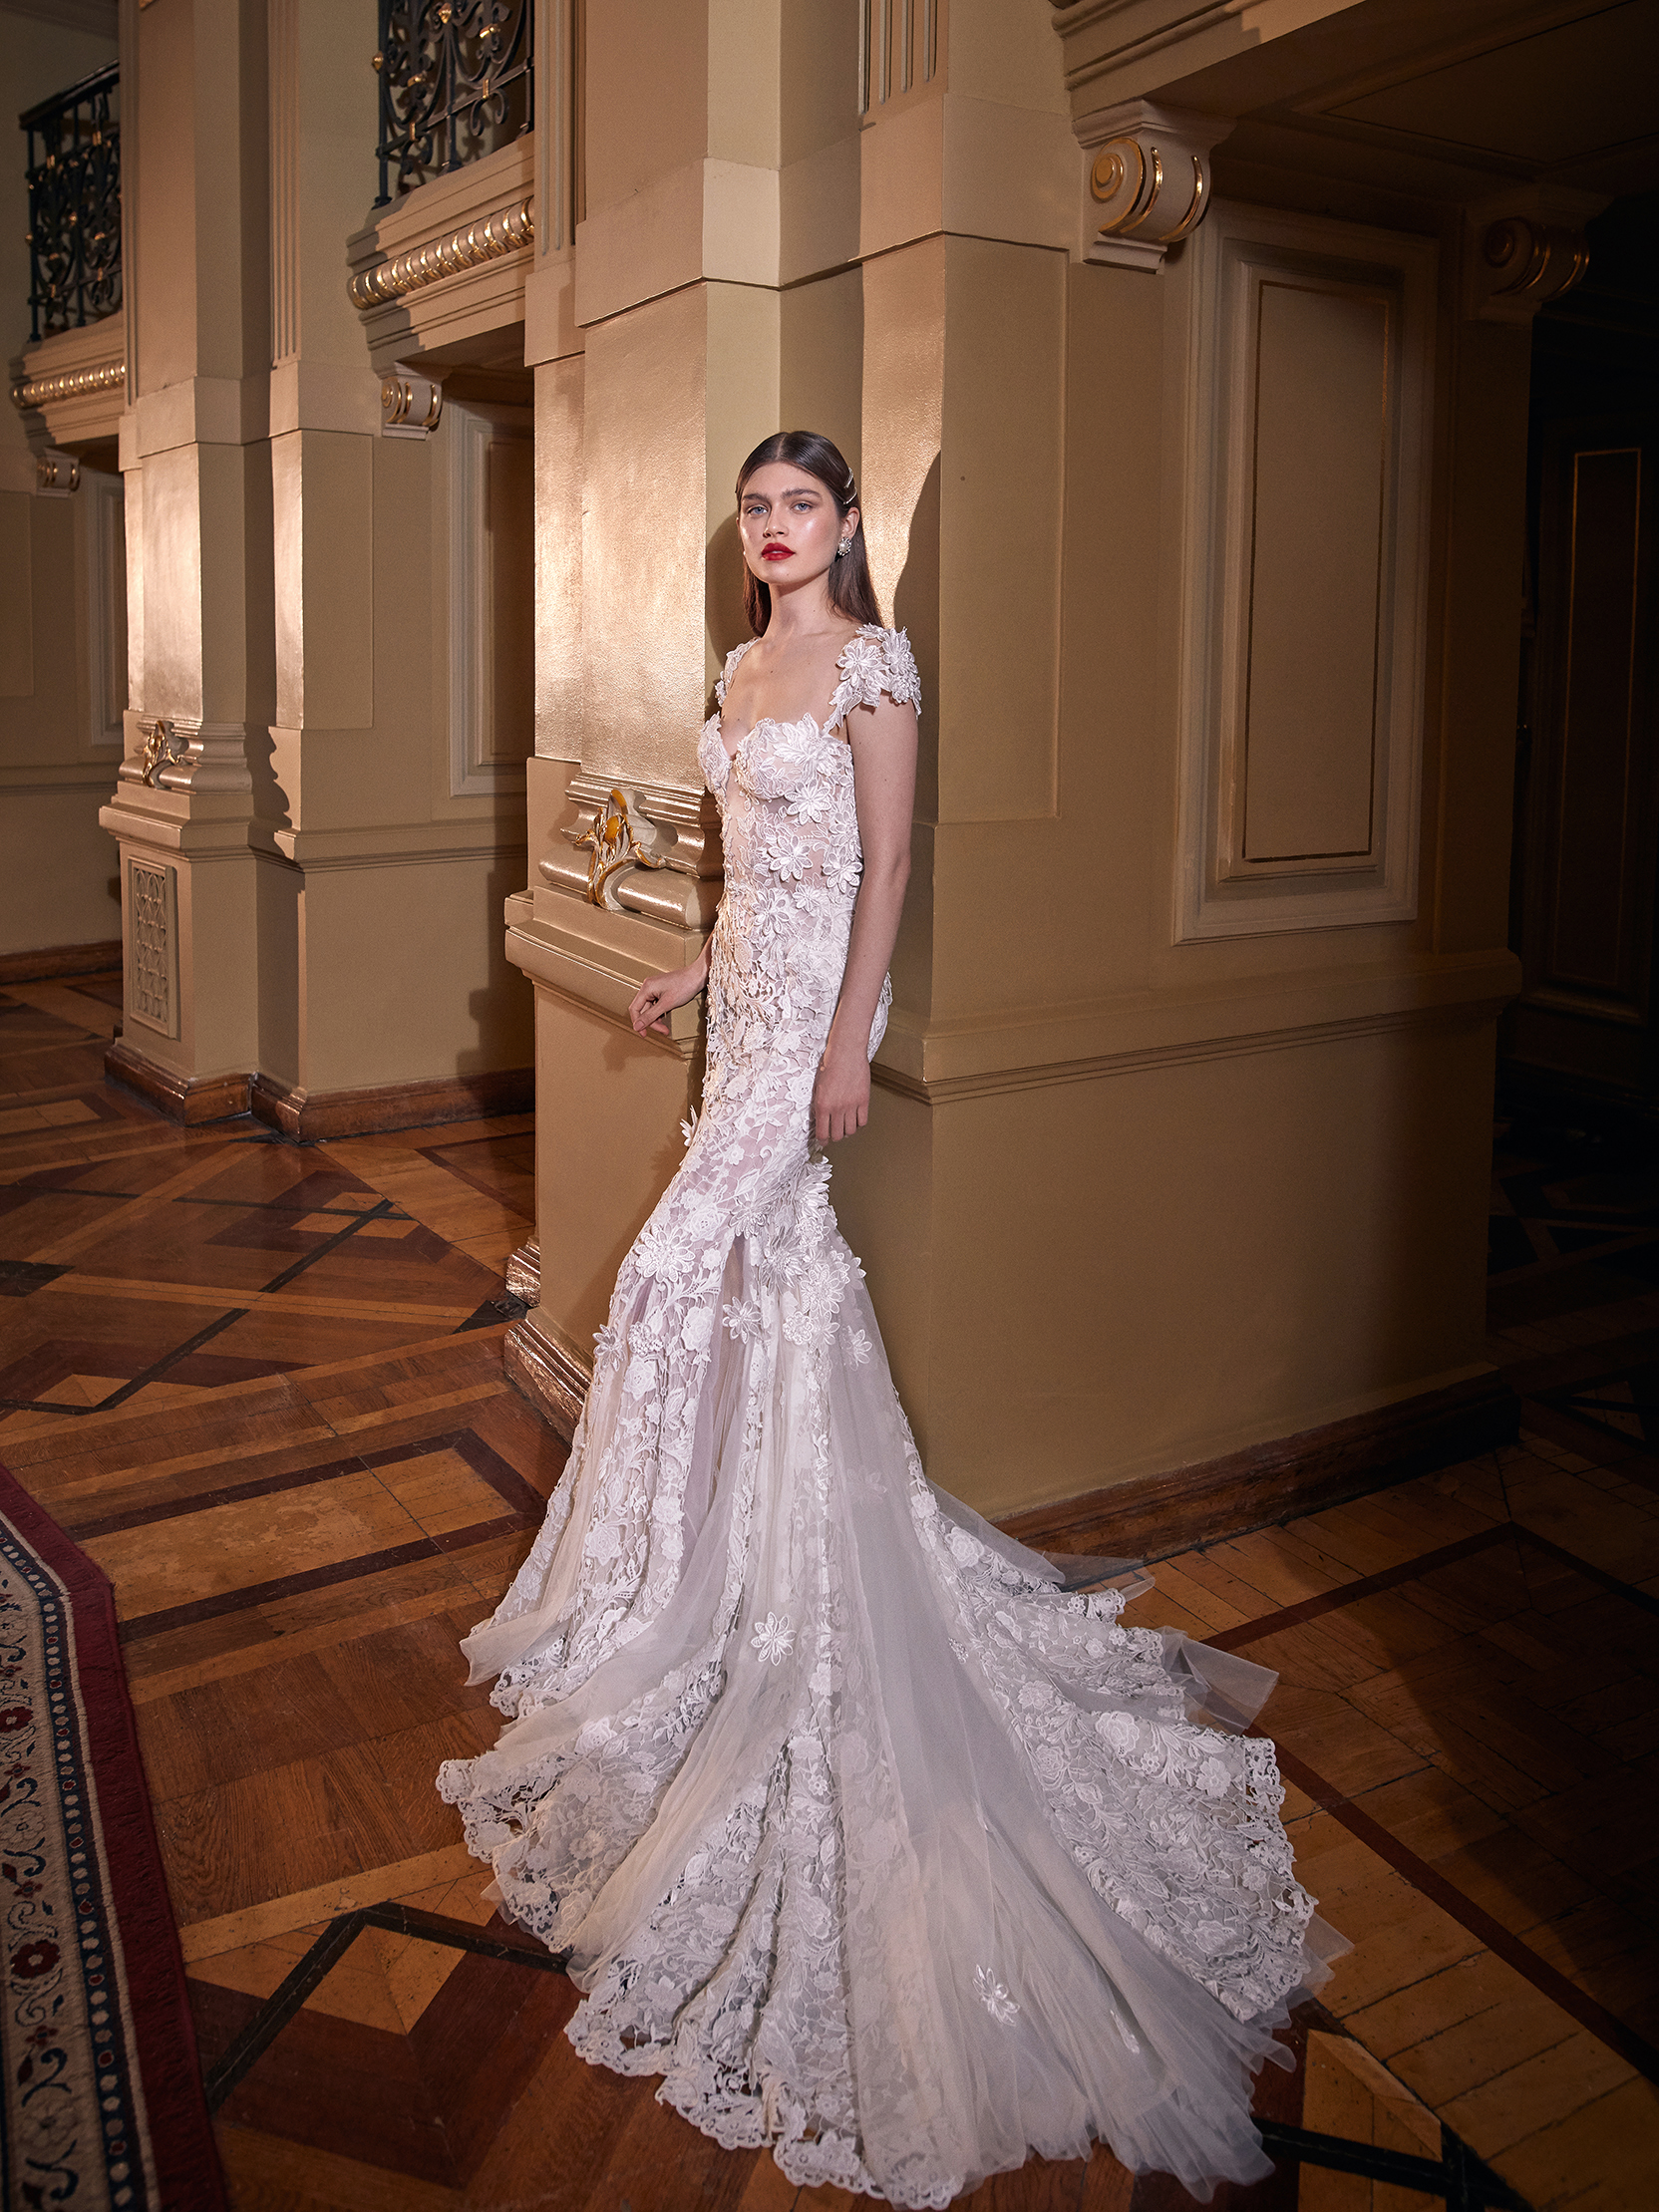 Galia Lahav Spring 2020 Wedding Dress Collection